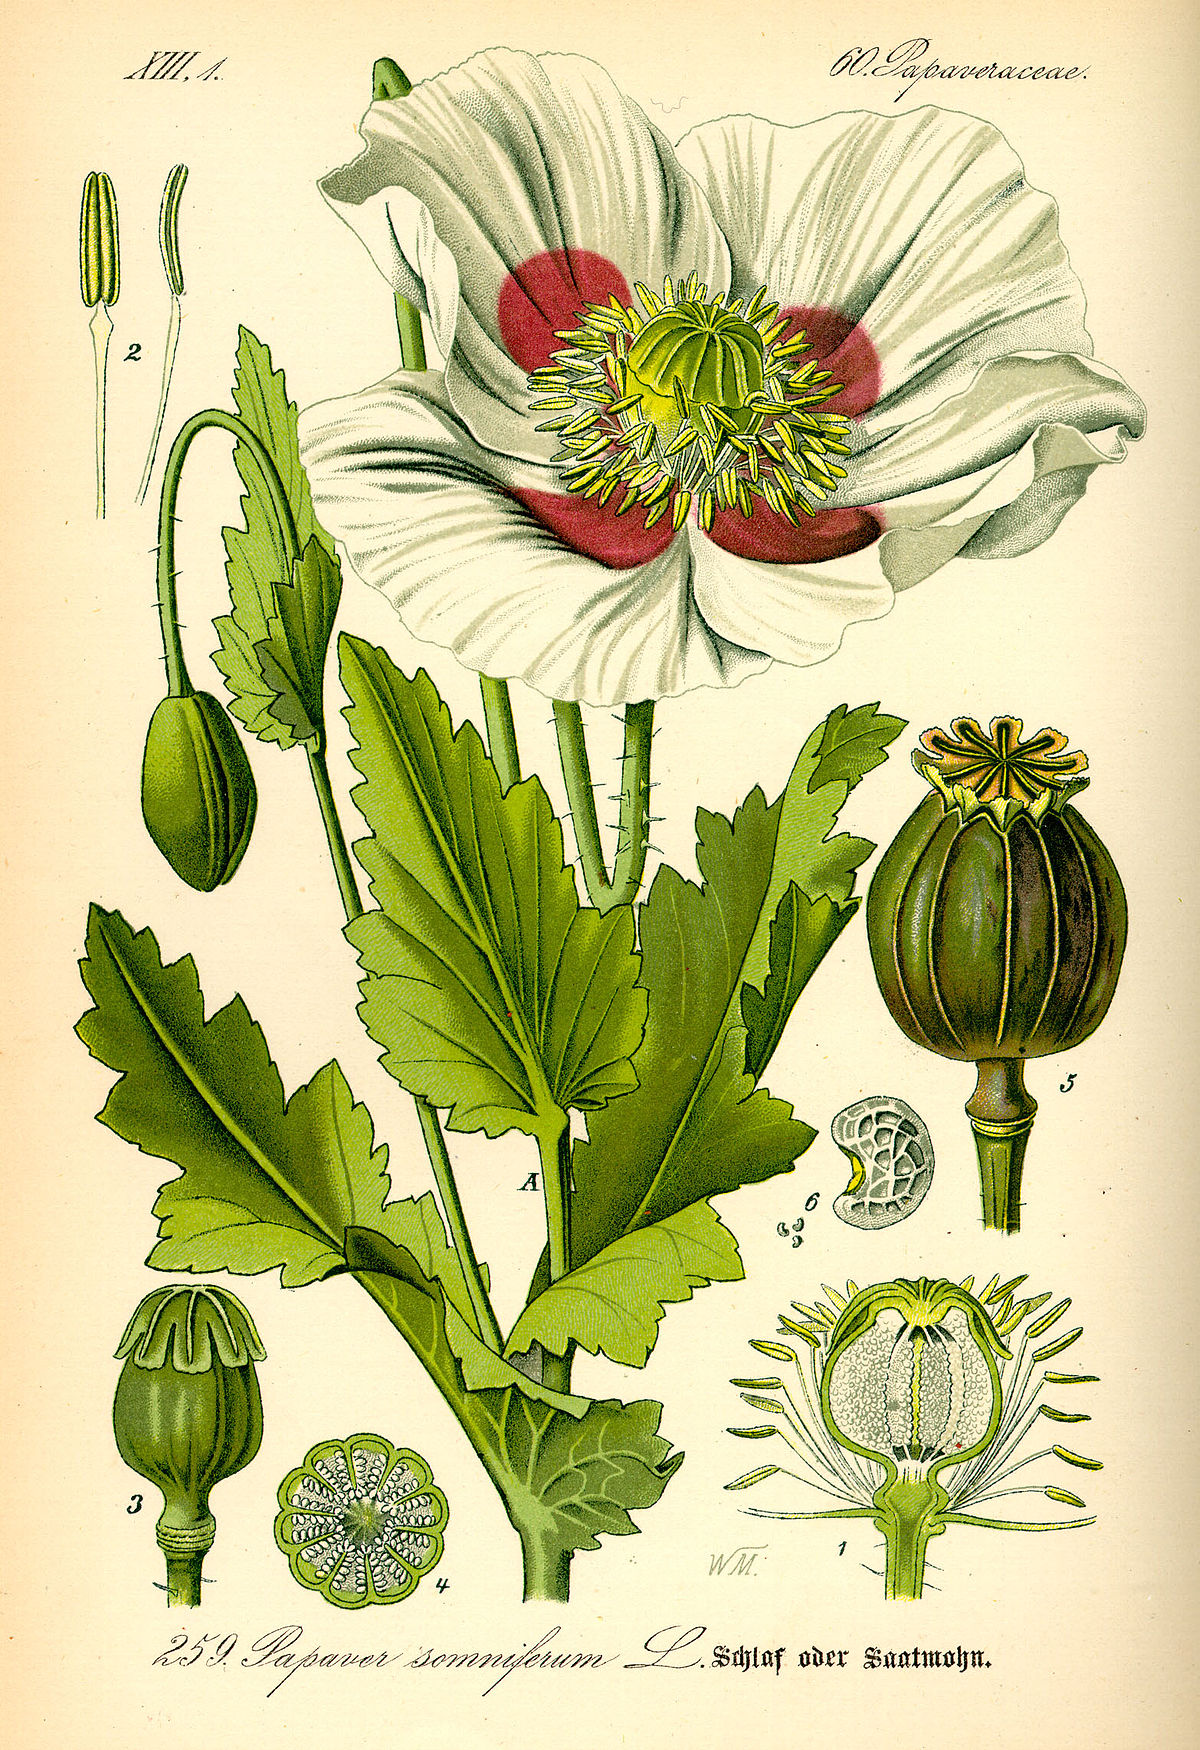 Drawn poppy scientific Papaver Wikipedia  somniferum